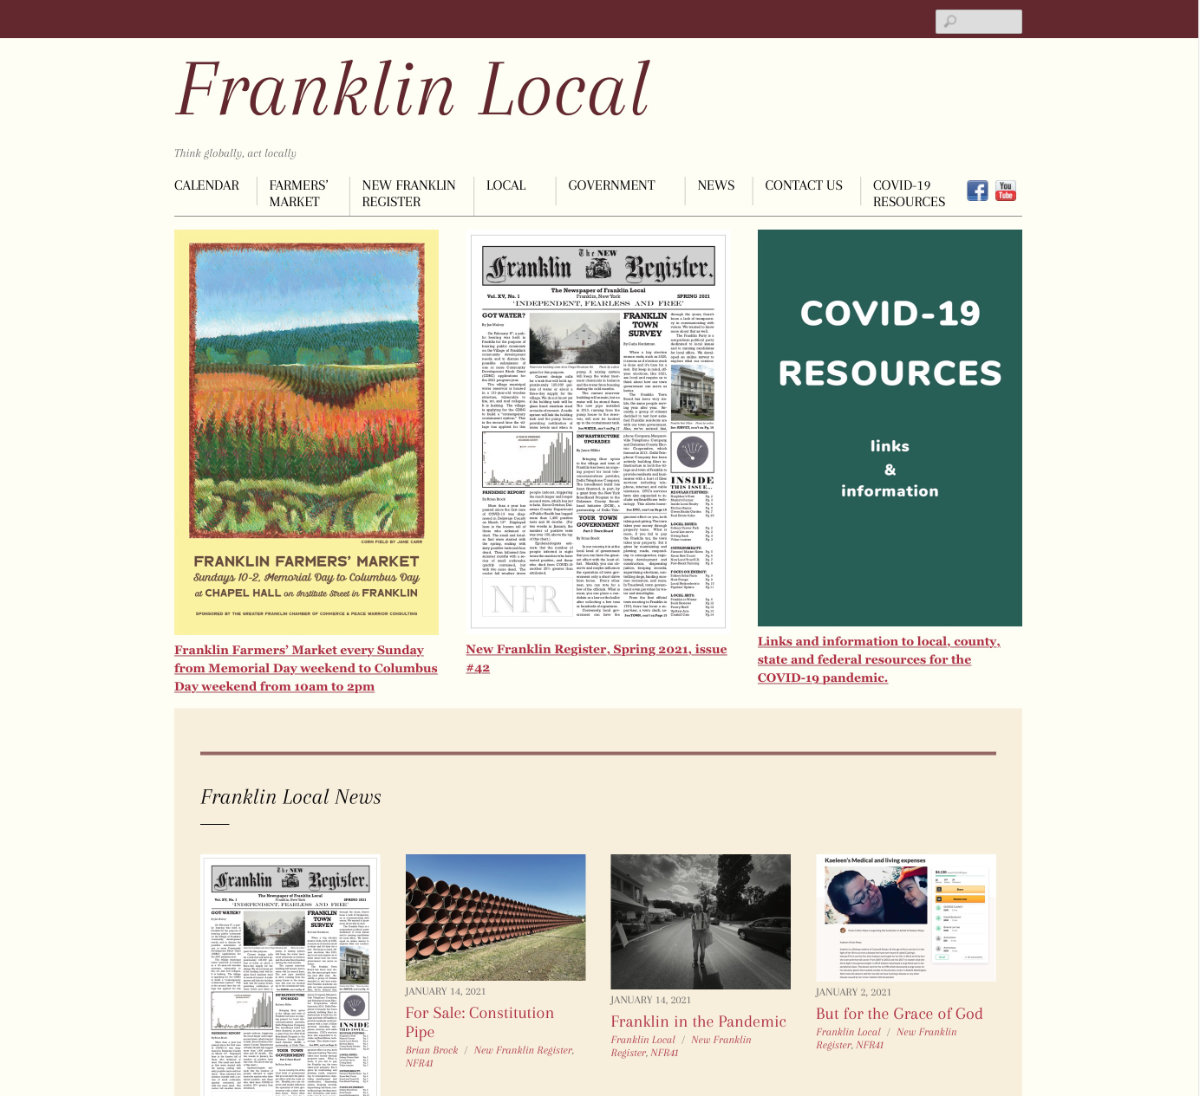 A local community website for residents of the Franklin/Treadwell NY area.  Visit website franklinlocal.org